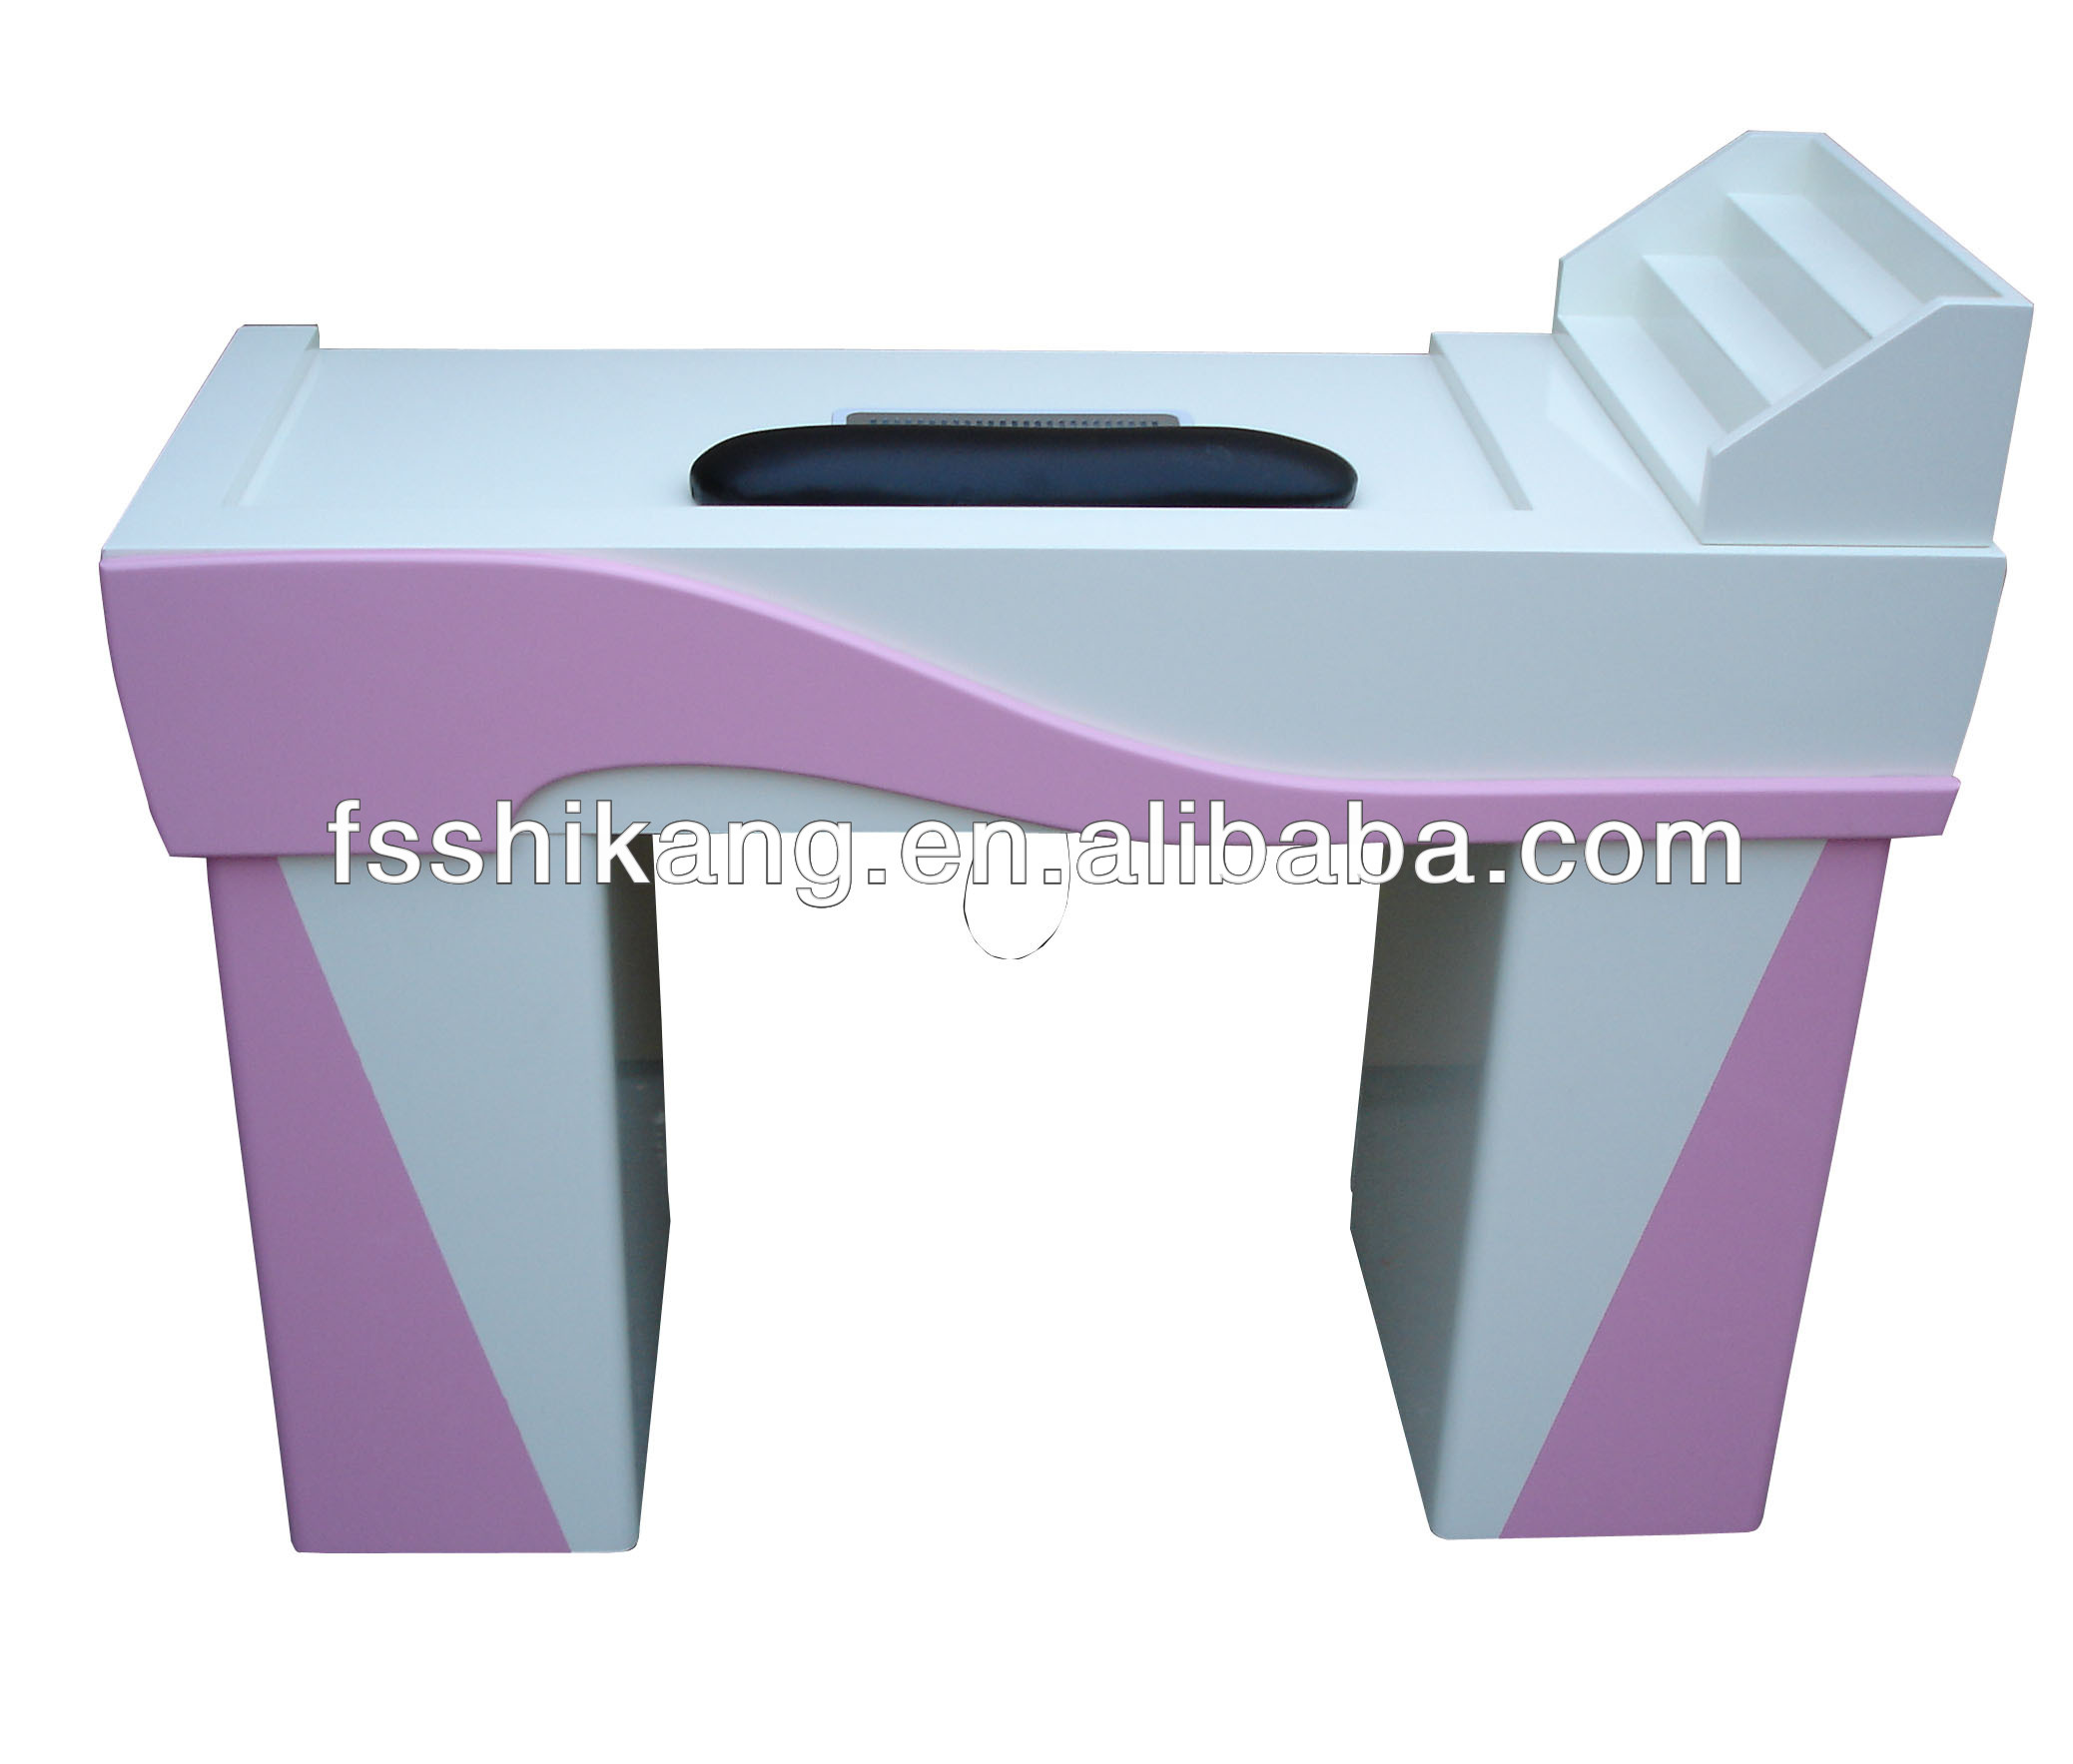 Fashion Design Beauty Salon Nail Bar Tables   Buy Nail Bar Tables,Salon  Beauty Manicure Nail Table,Luxury Nail Table Product On Alibaba.com